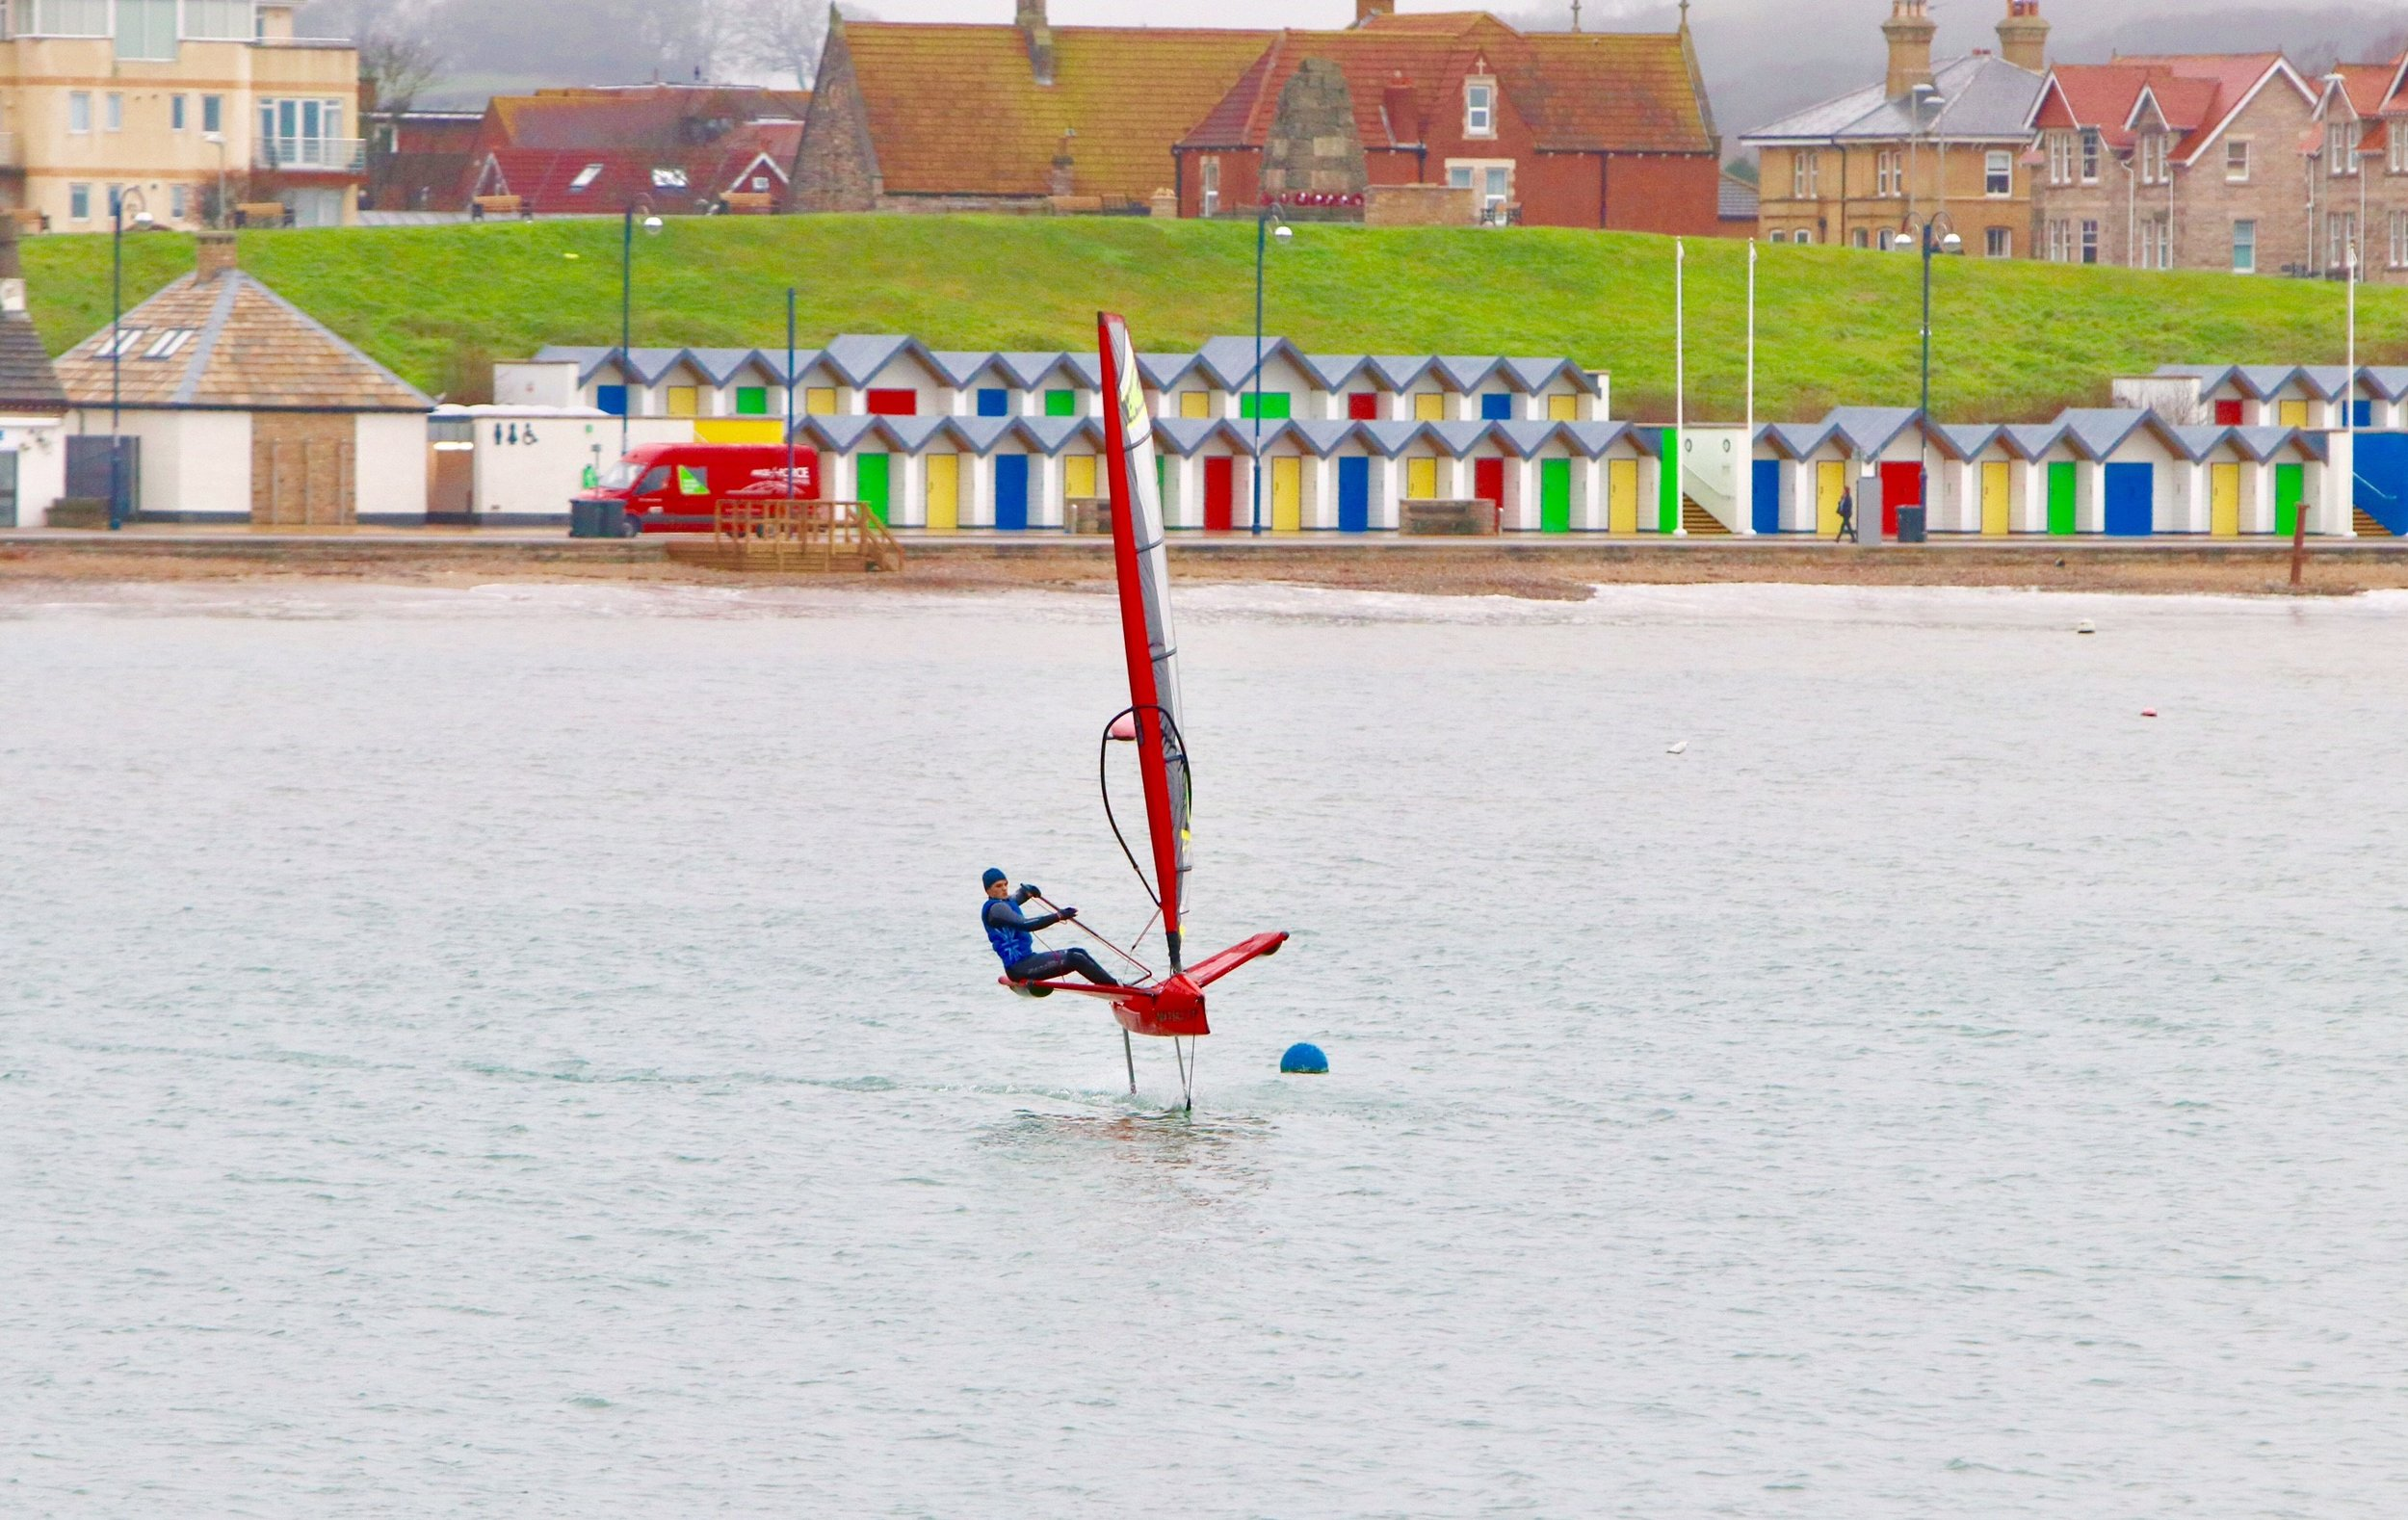 Flying above the surface of the water you go very fast which leads to some spectacular crashes!